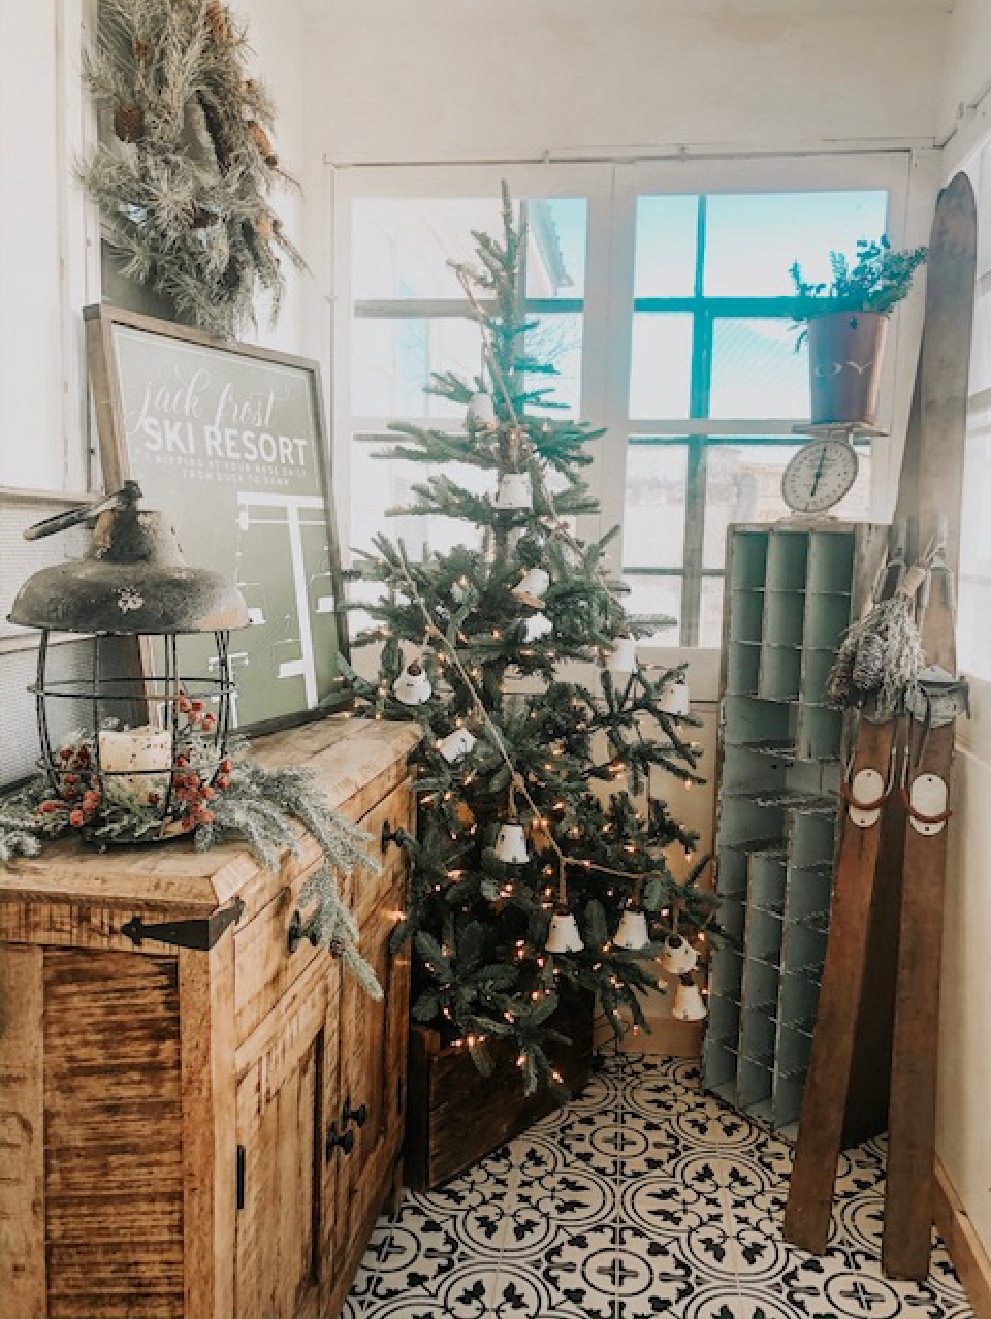 Sun porch decorated with a faux Douglas fir Christmas tree and a pair of 1940 wooden skis!